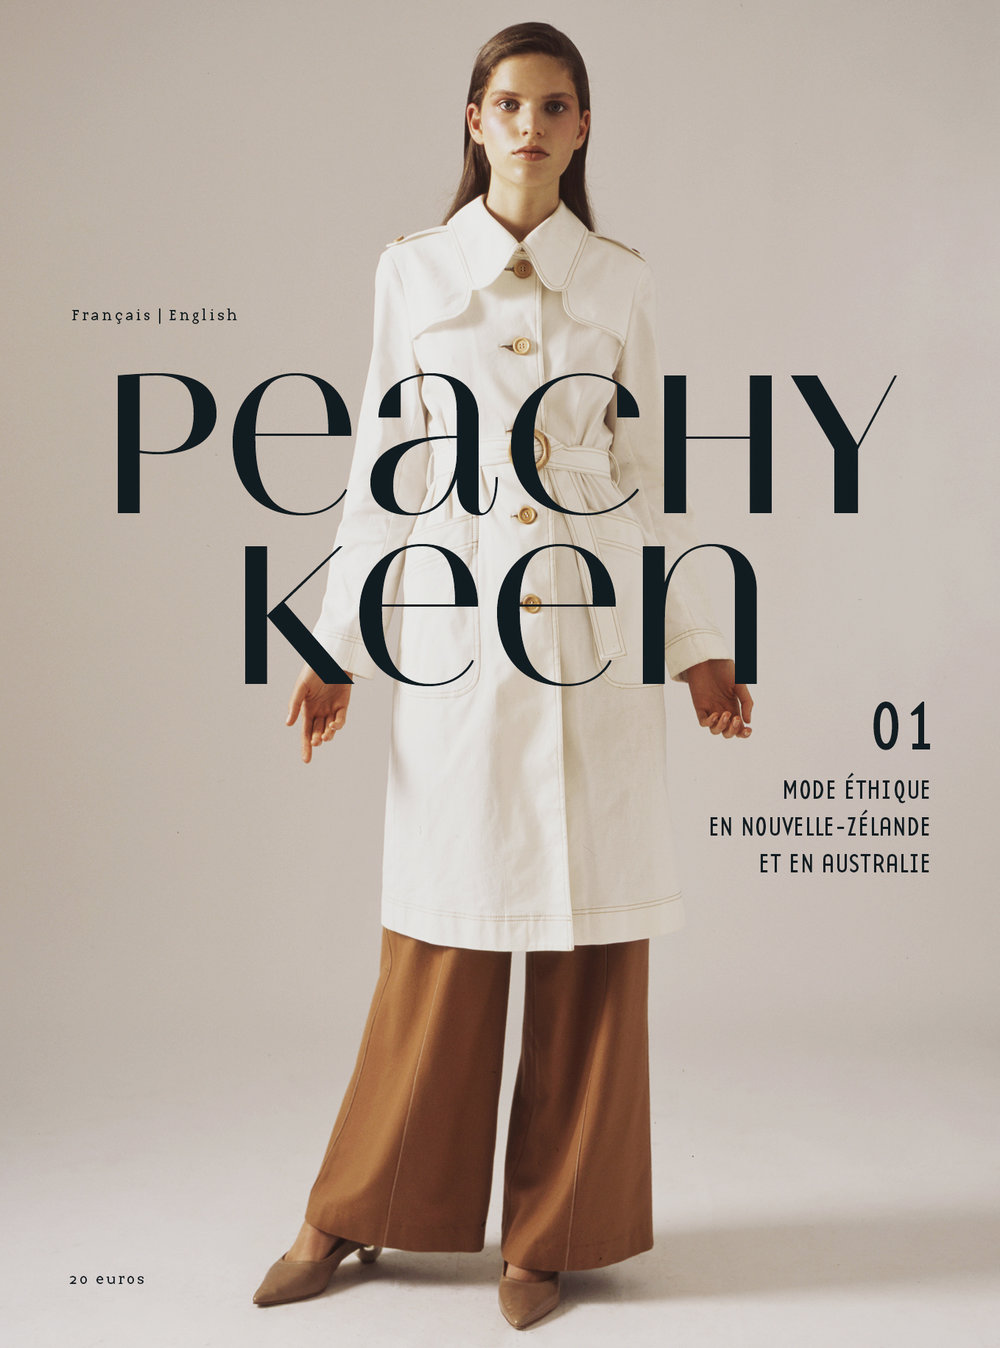 GET YOUR COPY OF PEACHY KEEN MAGAZINE 01 -